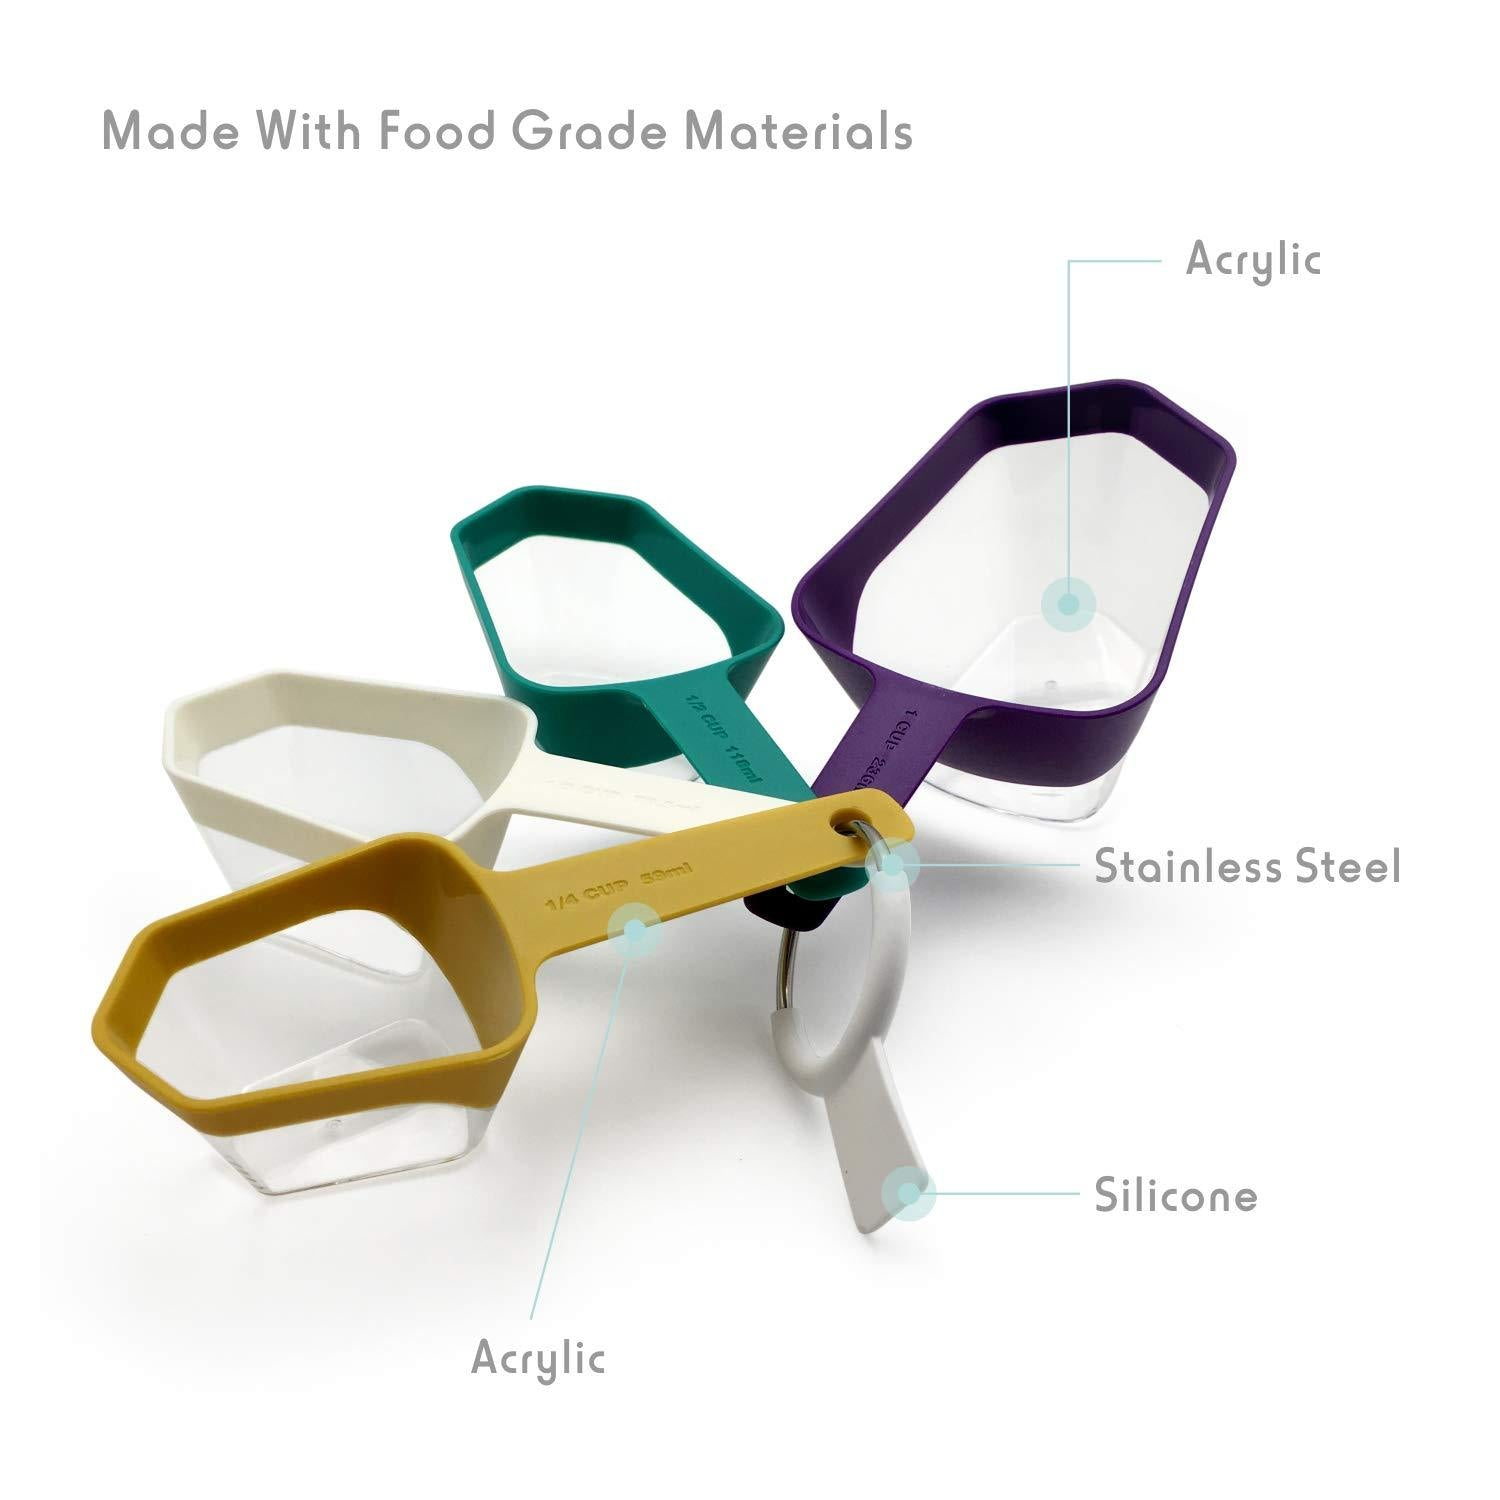 Fortune Candy Measuring Spoons, LFGB-certified, BPA-Free, for Dry and Liquid Ingredients - Fortune Candy